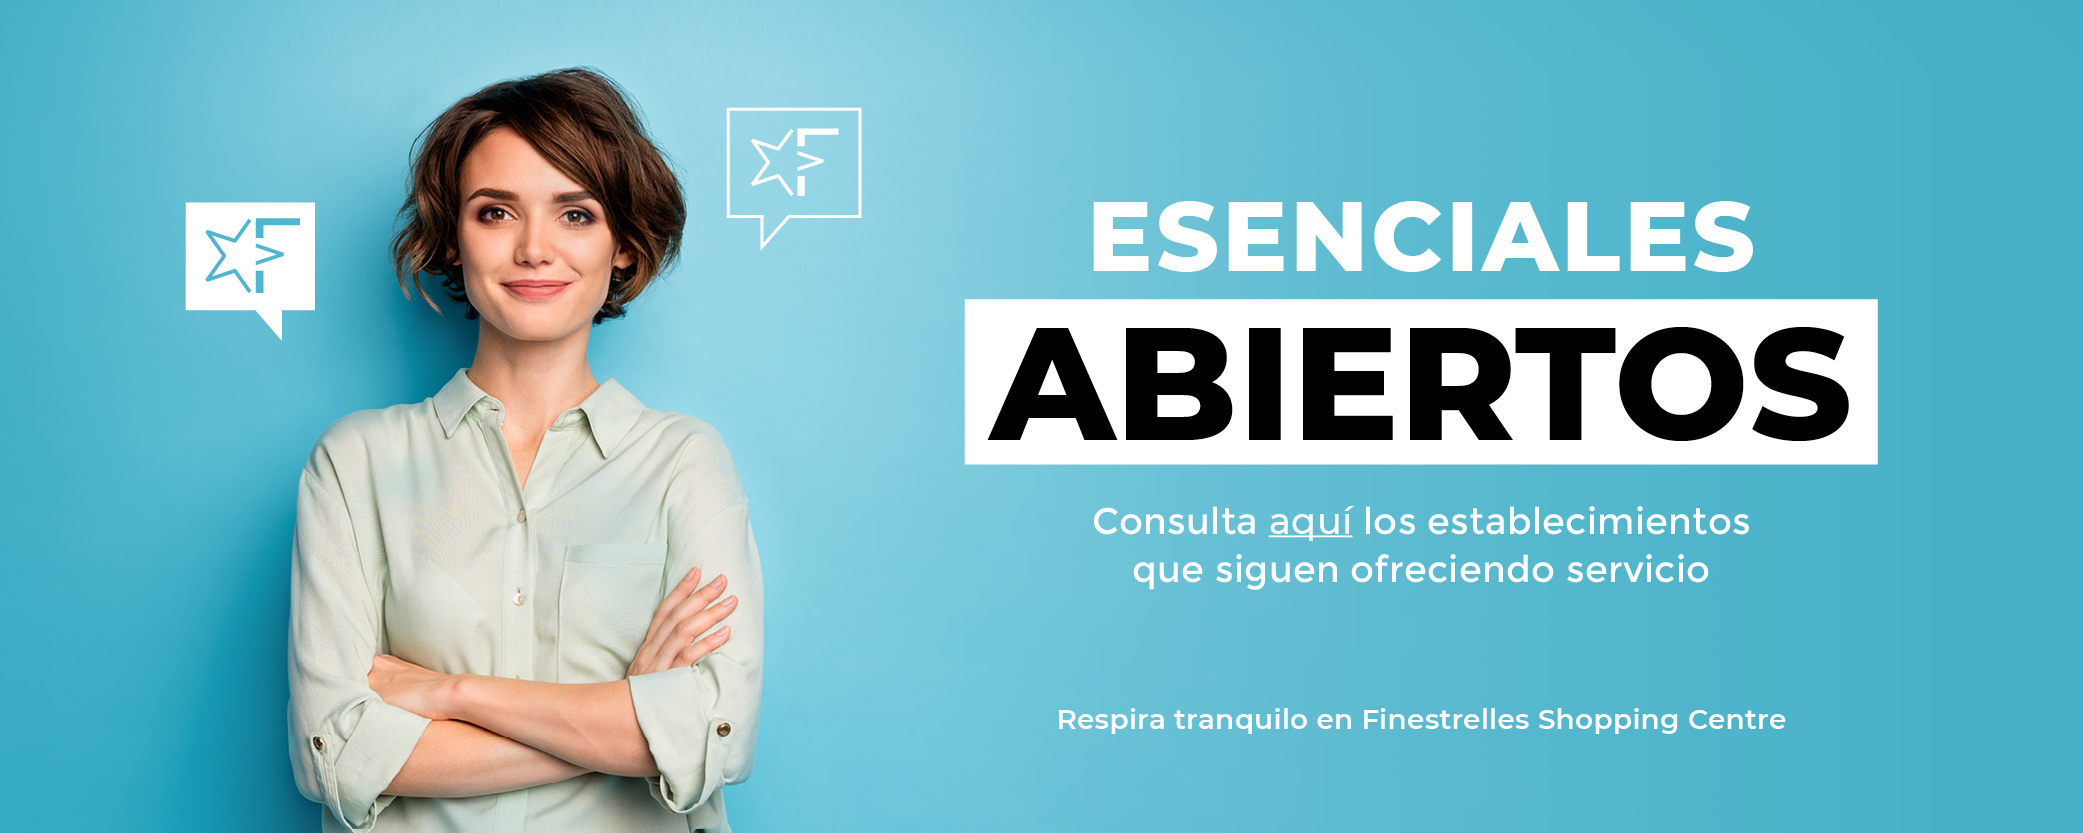 Esenciales abiertos en Finestrelles Shopping Centre